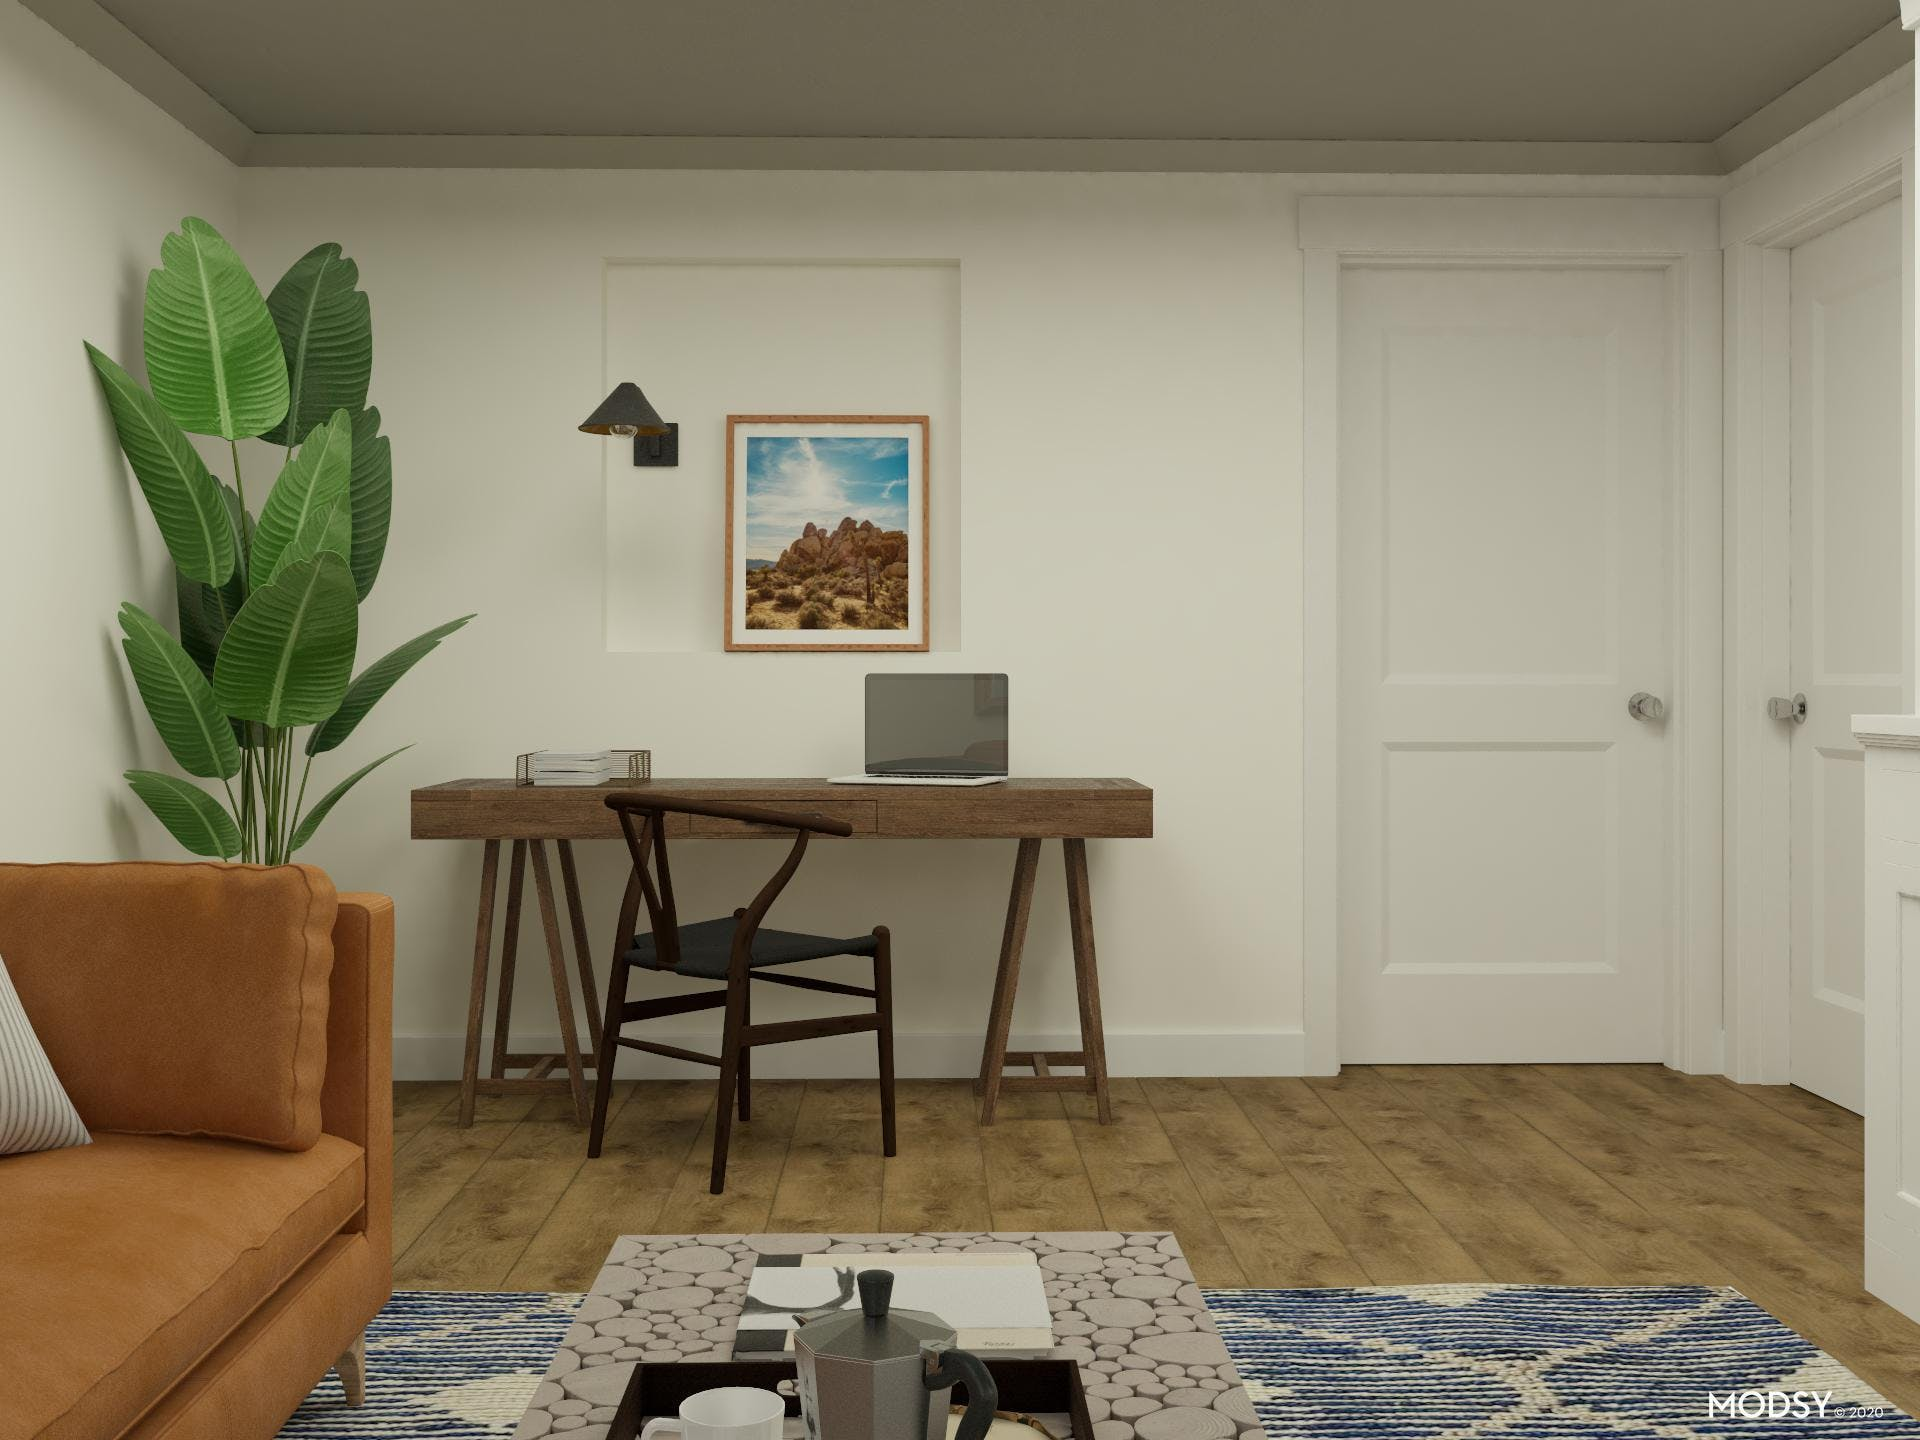 Basement Living Room Work Area in Relaxed Transitional Style